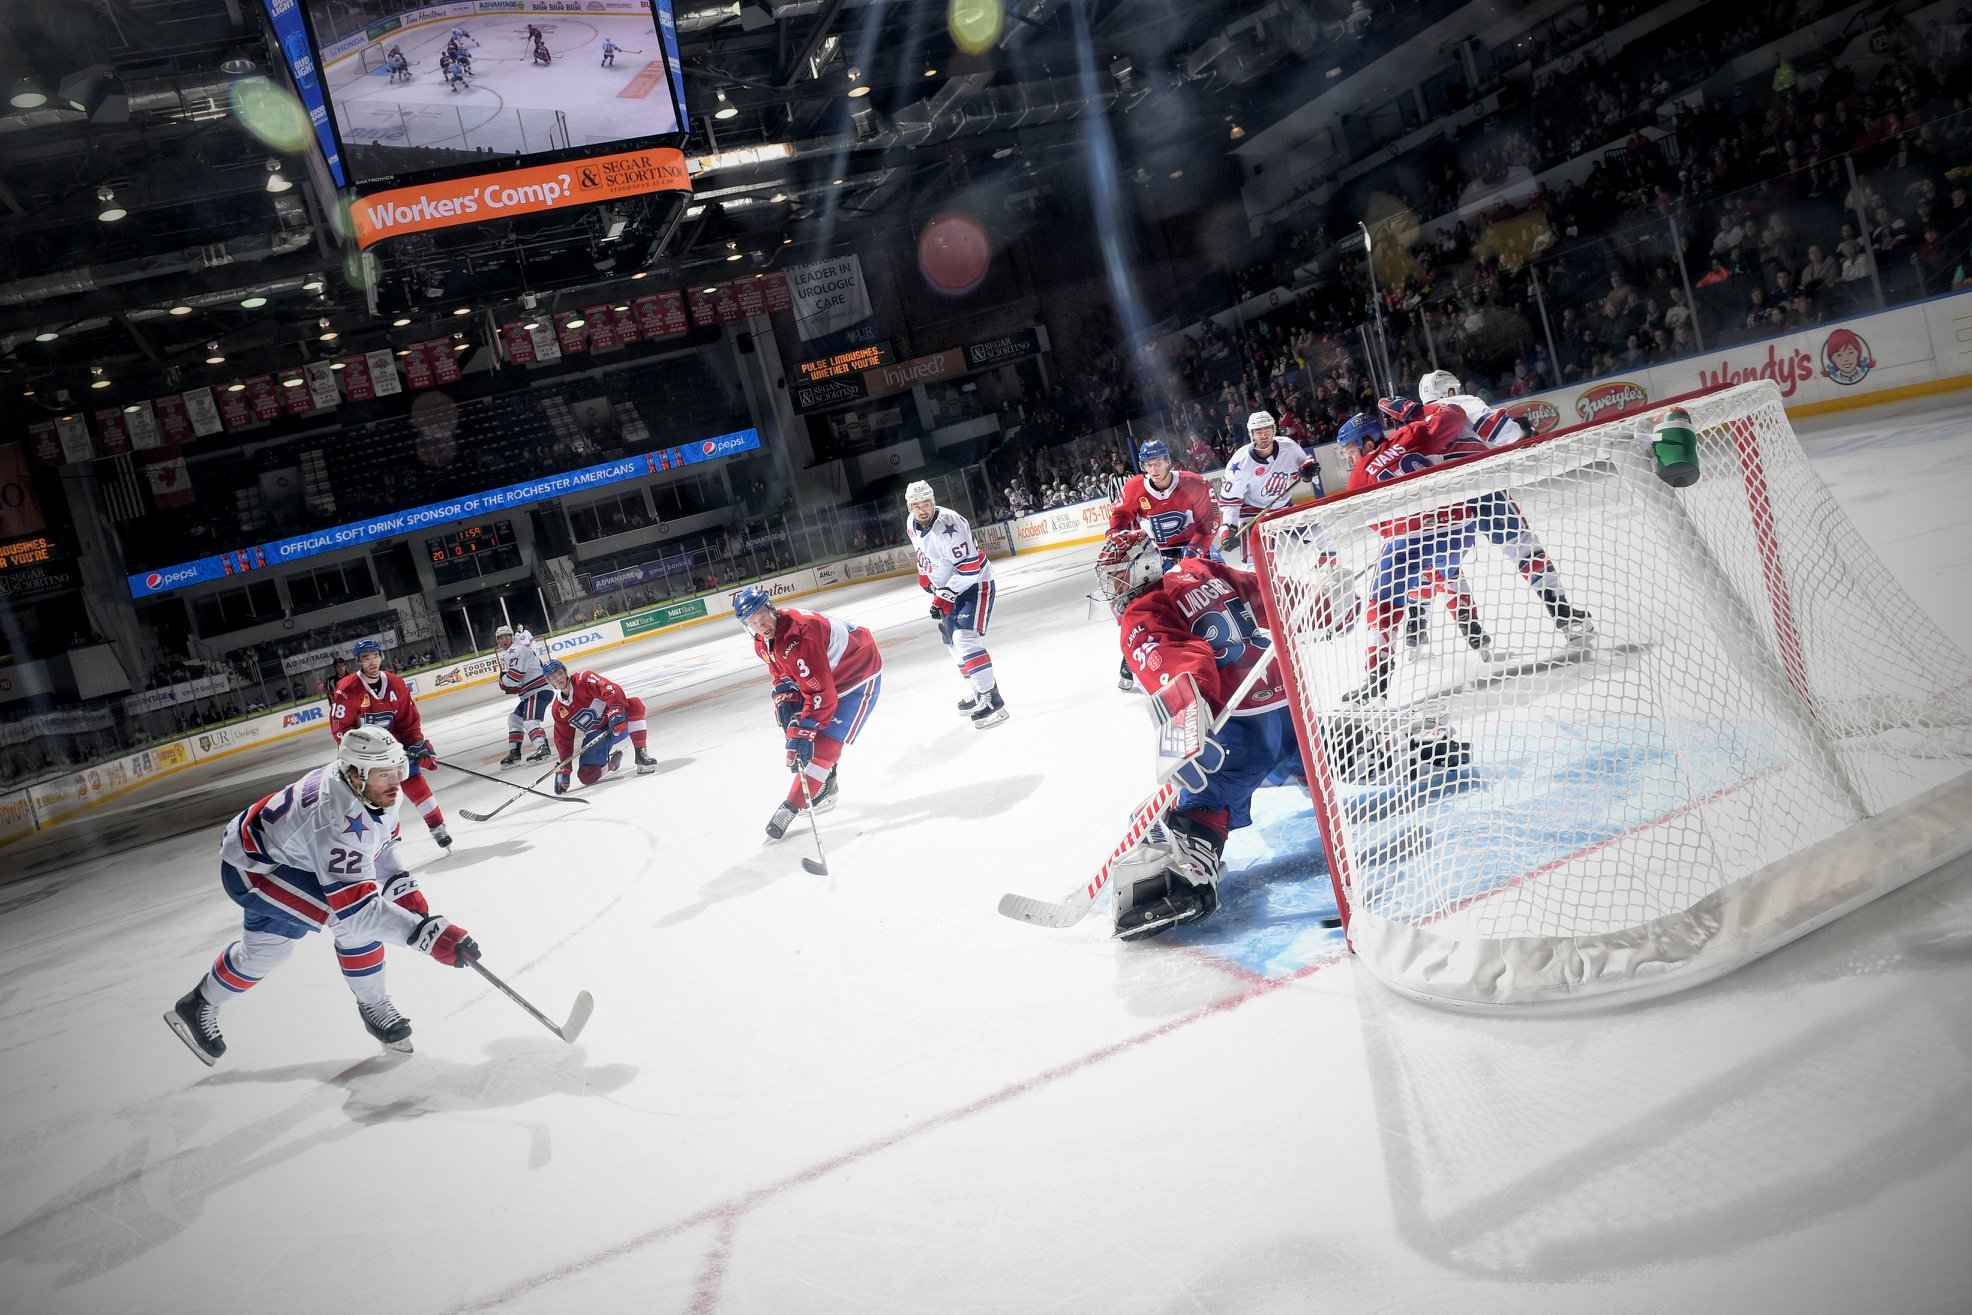 AHL: Rochester Amerks Recap - Fight To Win - Die By The Blade